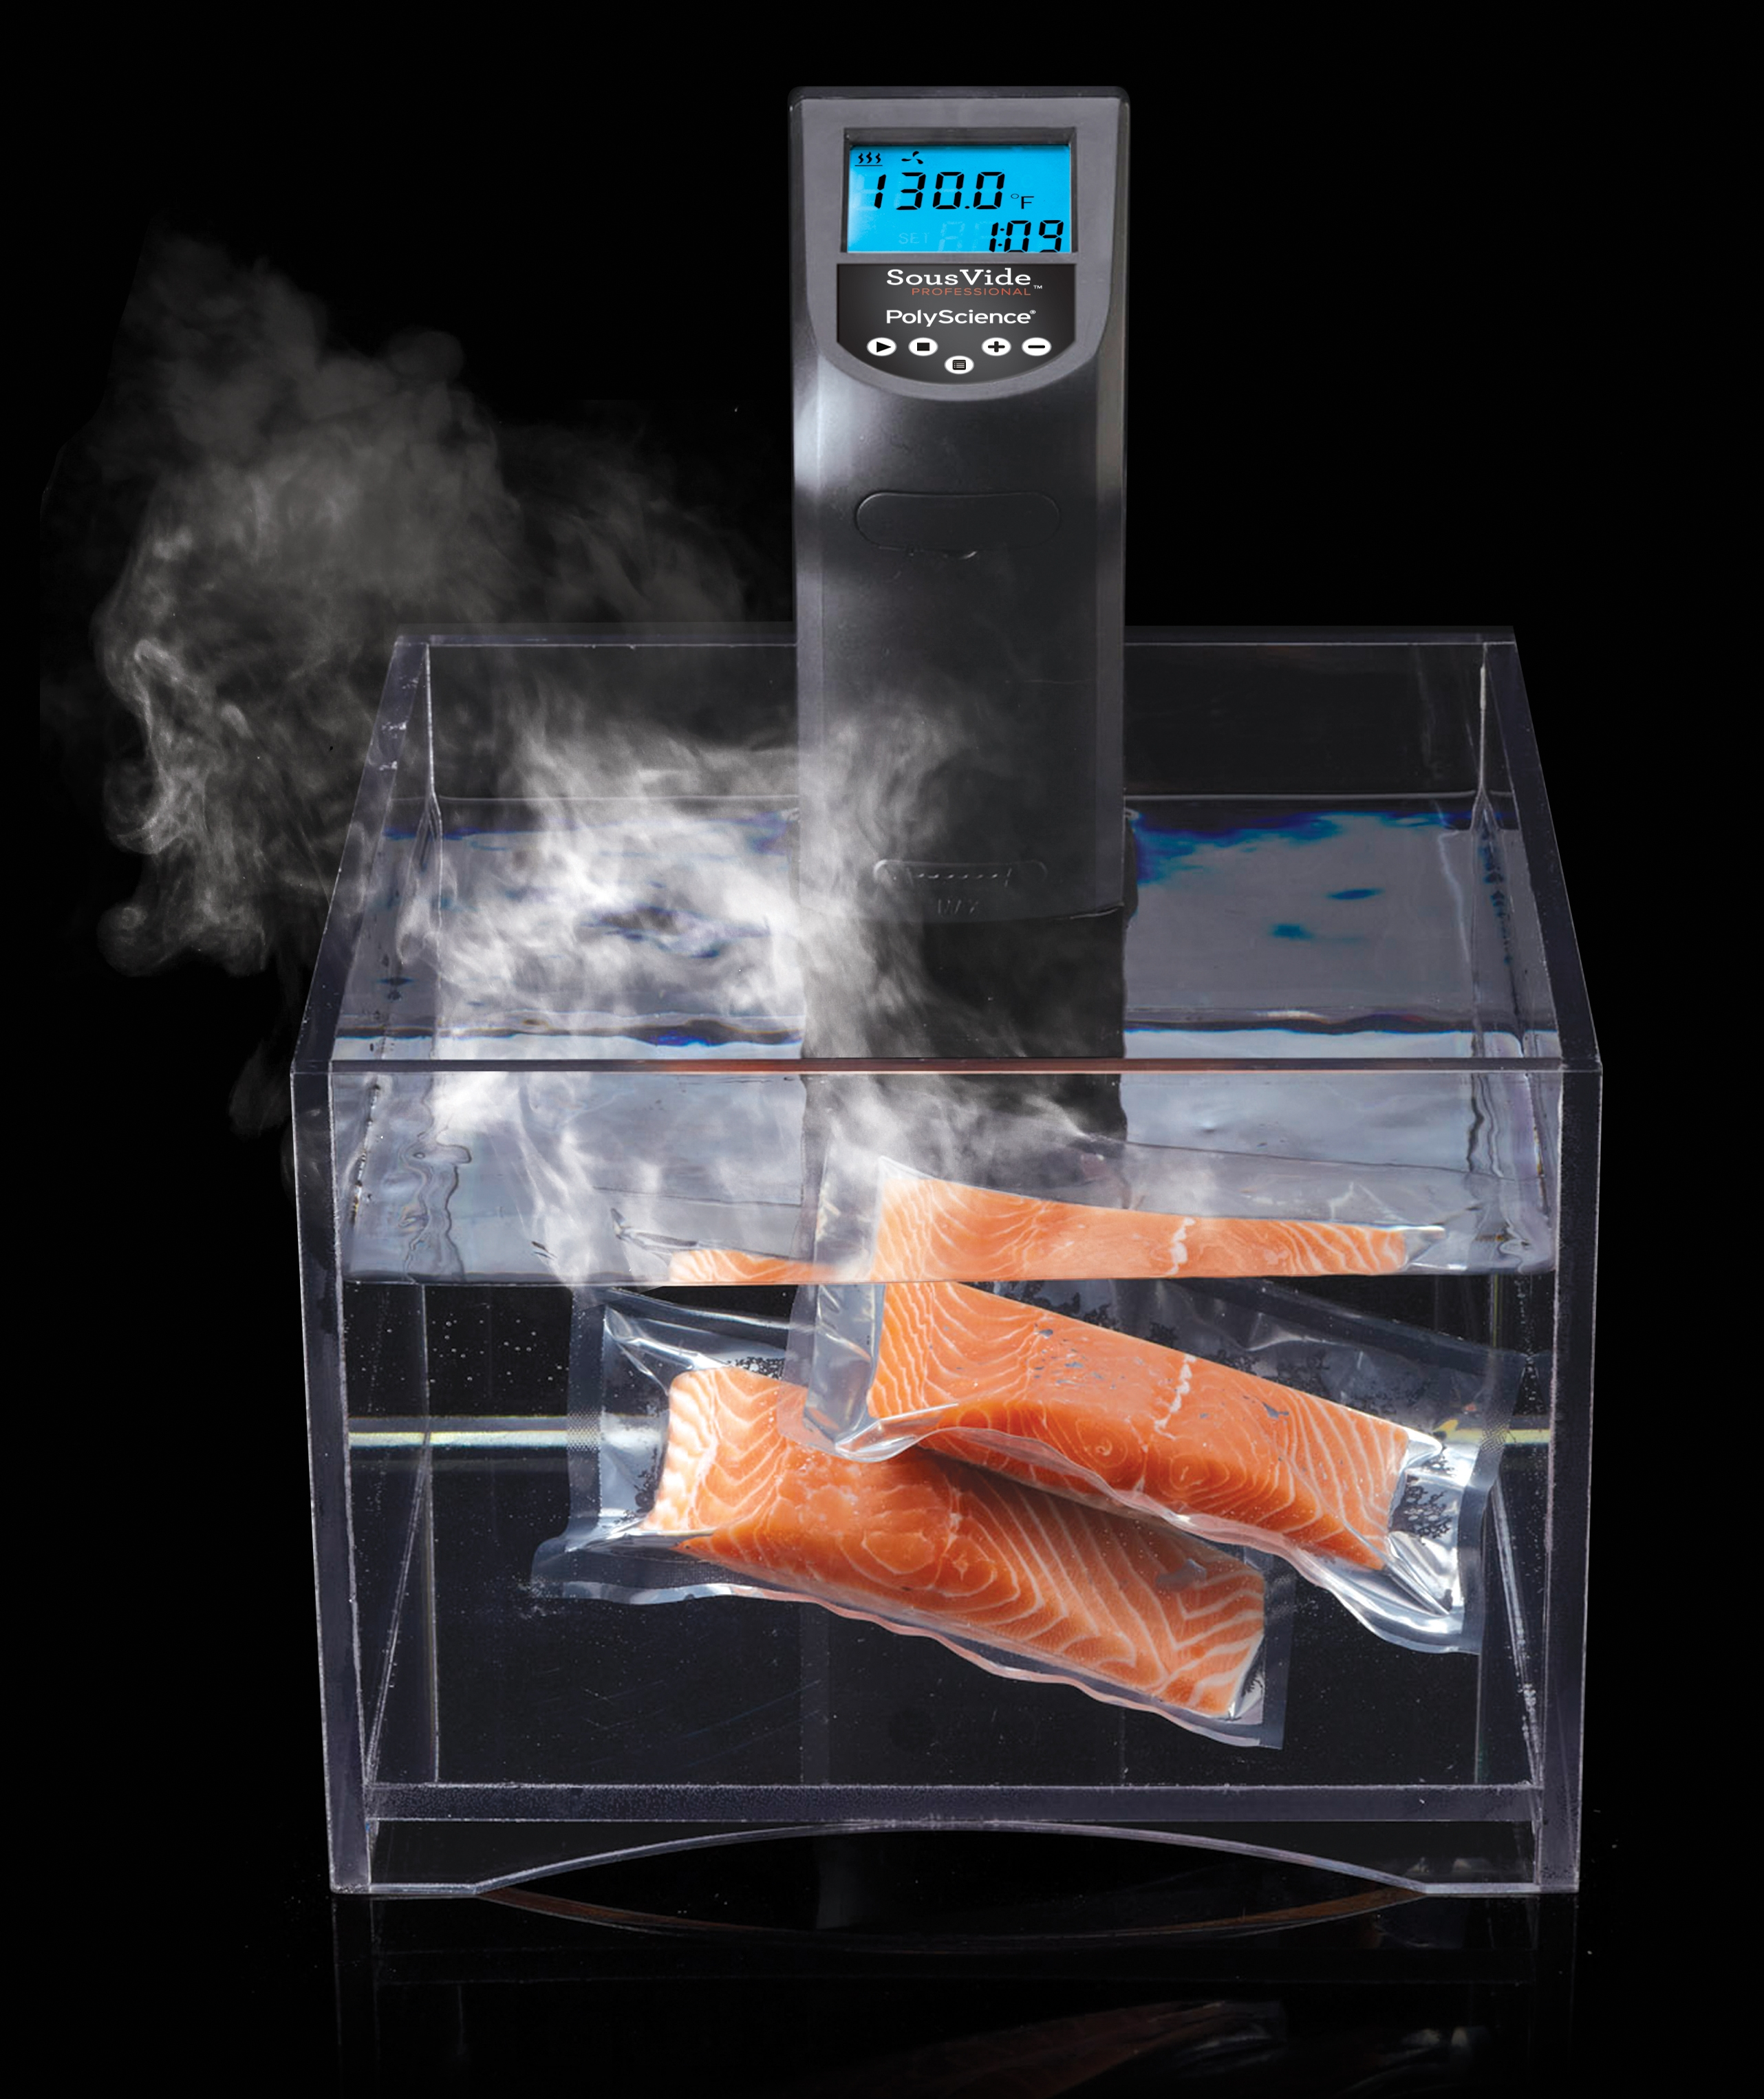 PolyScience Introduces New Sous Vide Circulator for Casual